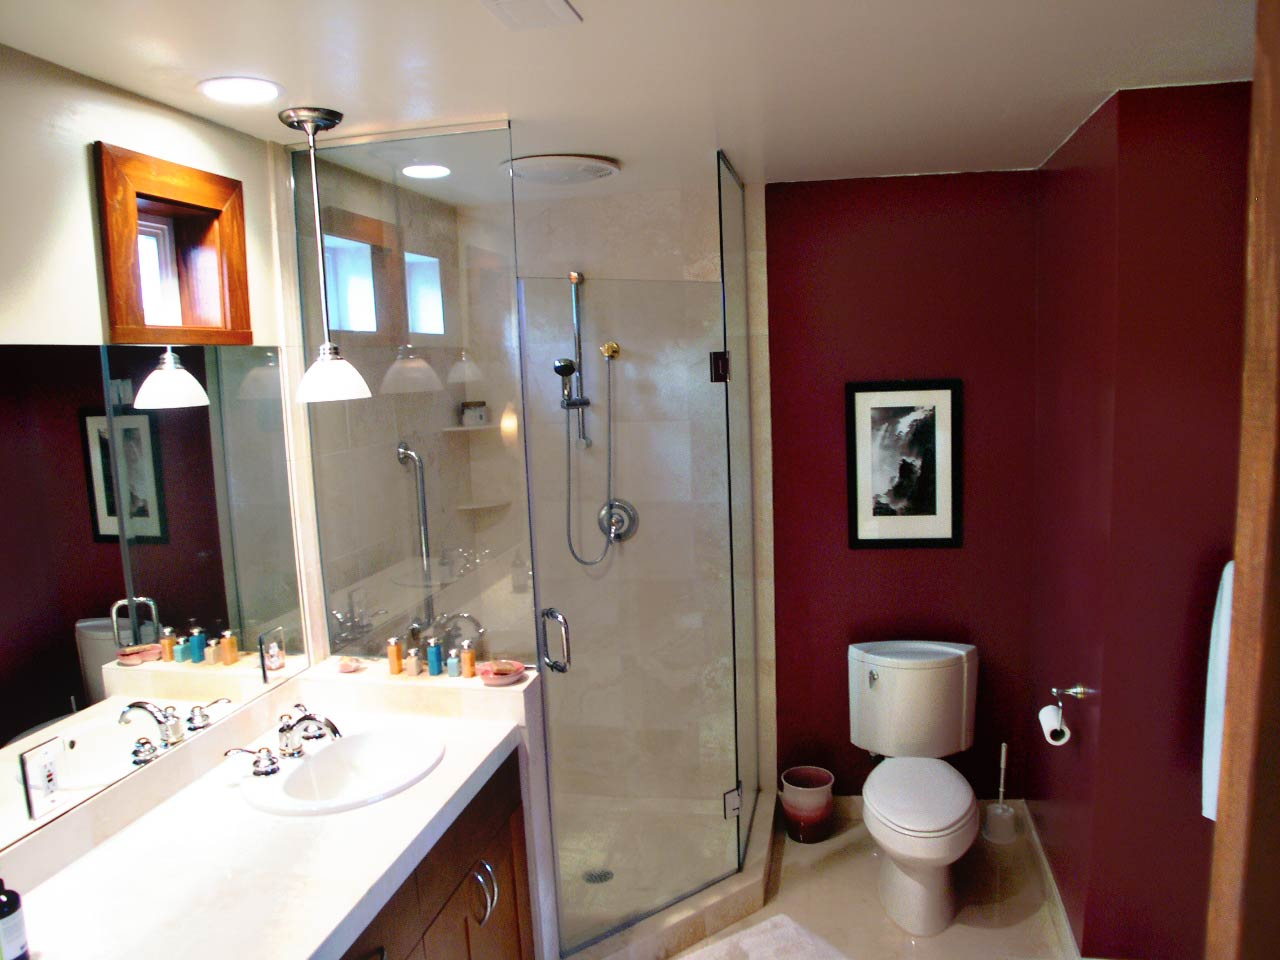 100 Remodeling On A Dime Bathroom How To Remodel An Old Farmhouse On A Small Budget